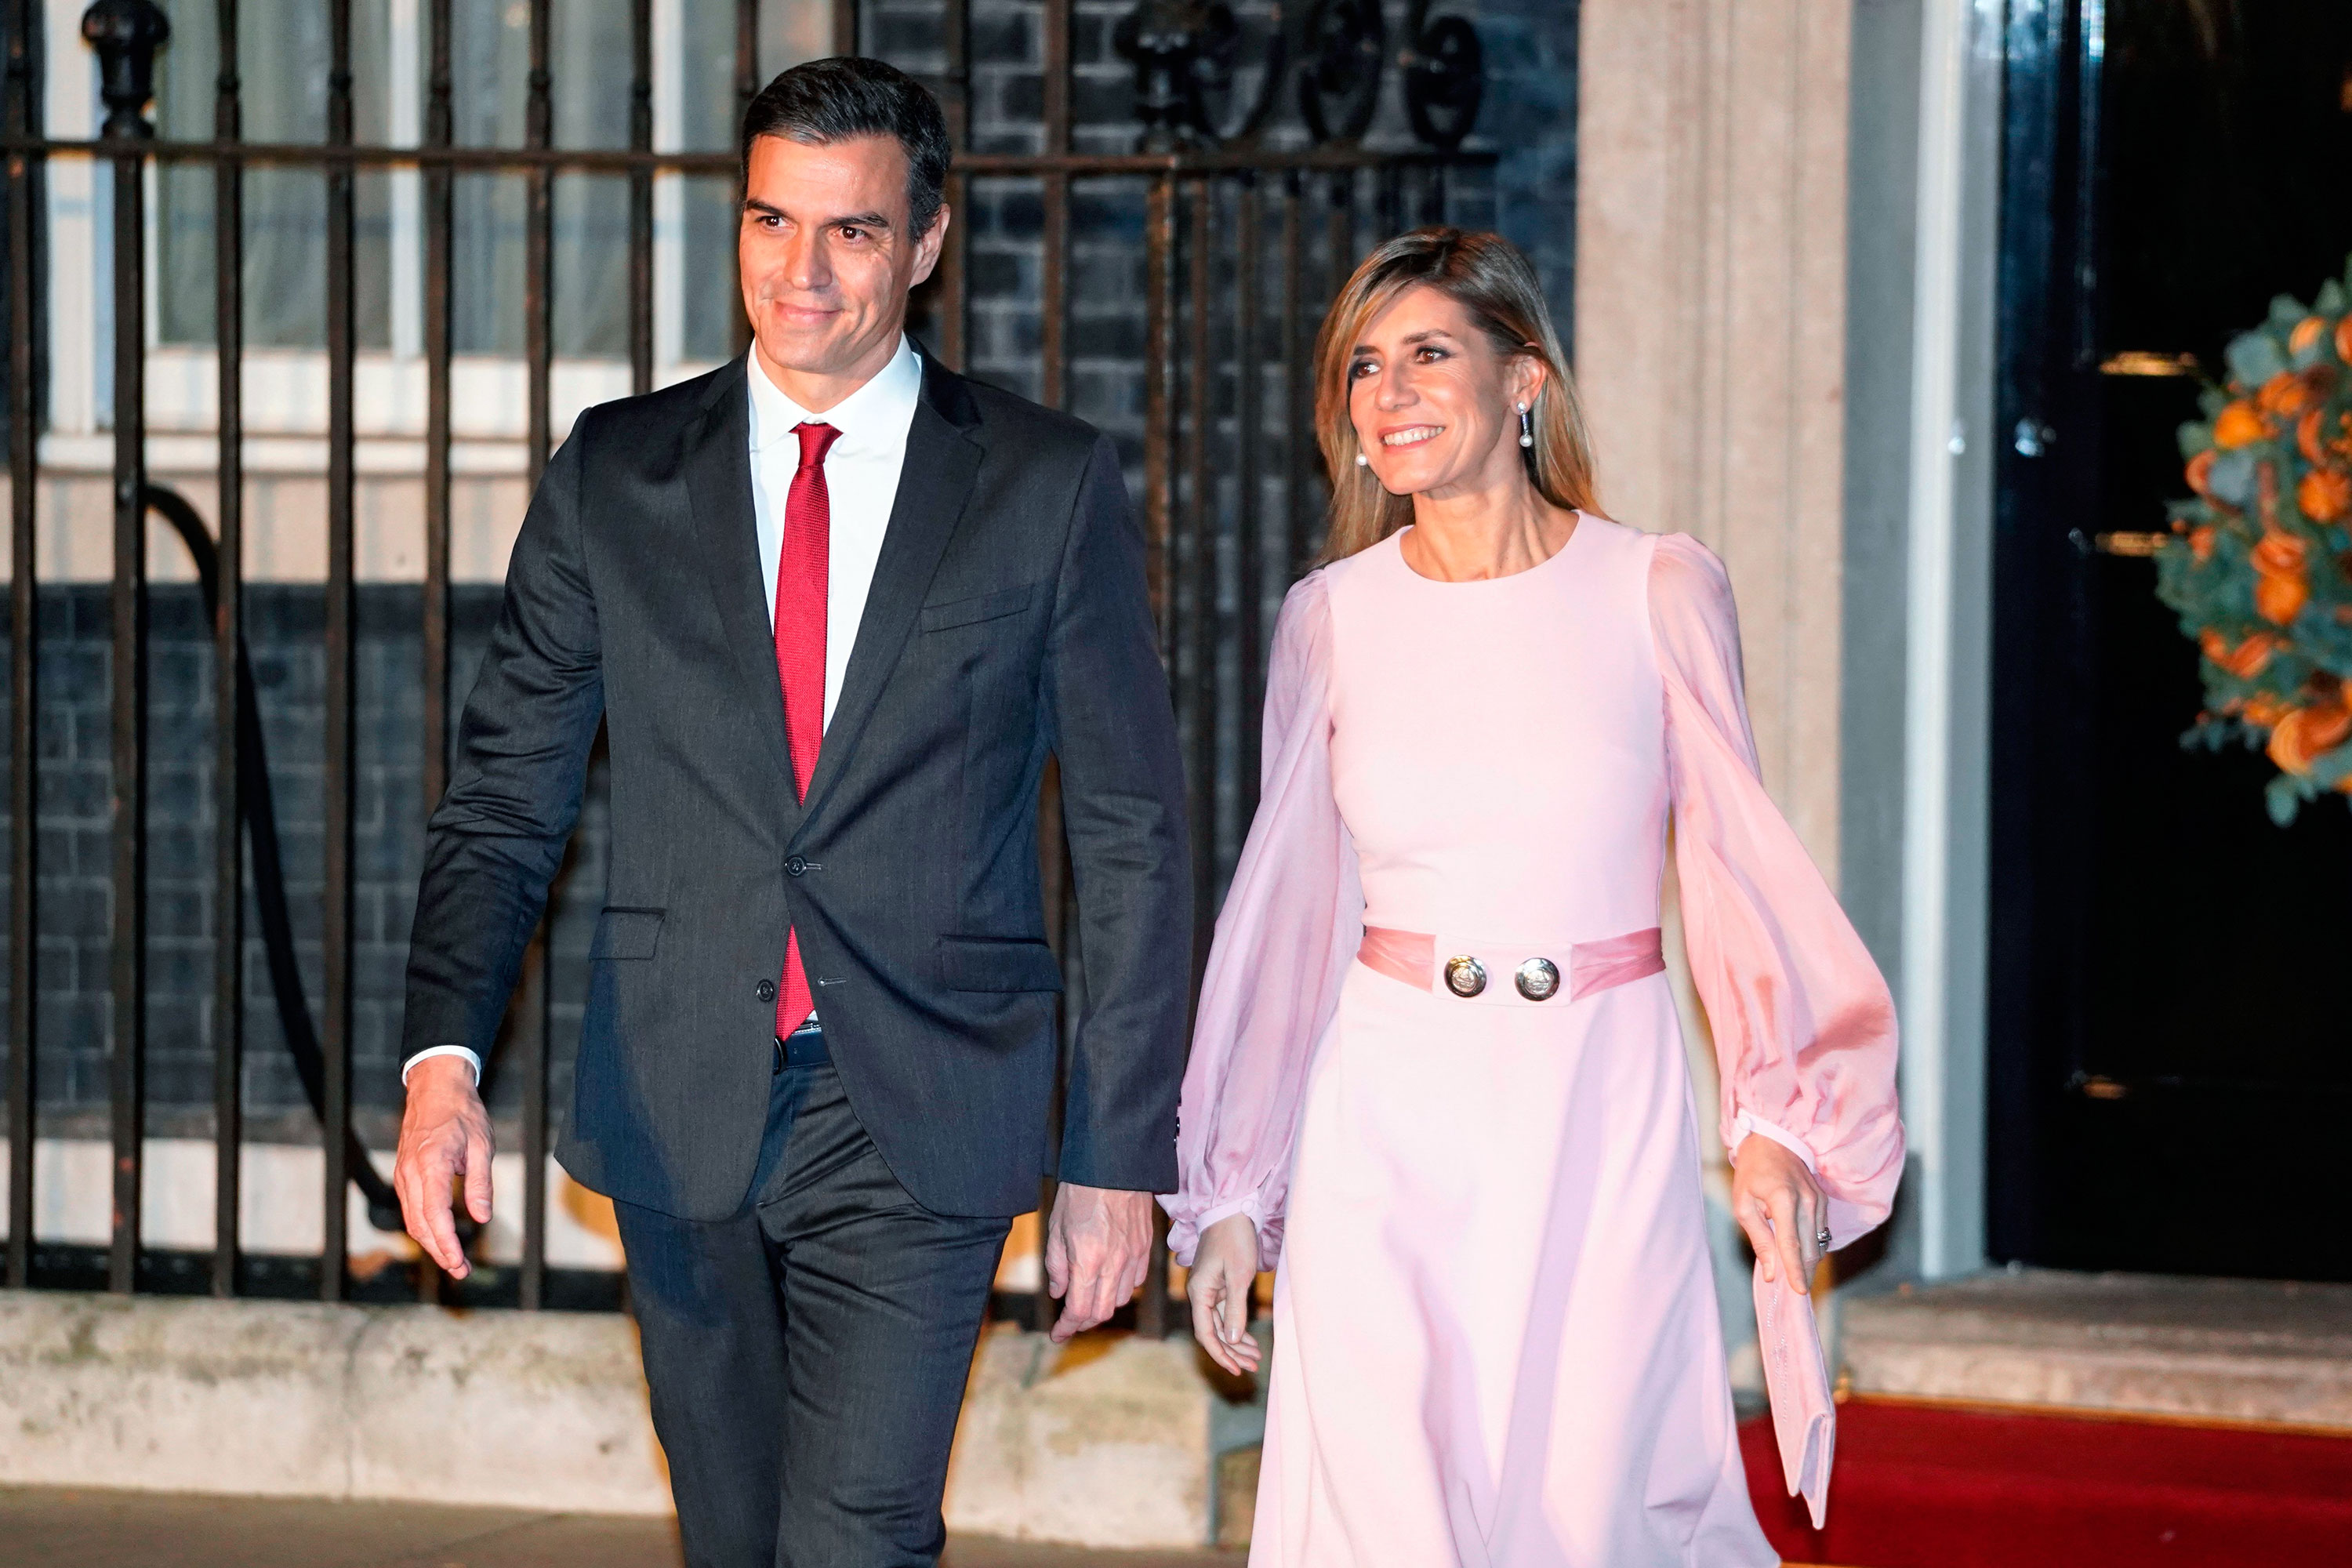 Spanish Prime Minister Pedro Sanchez and his wife Doña Begoña Gómez leave 10 Downing Street in central London in December 2019.